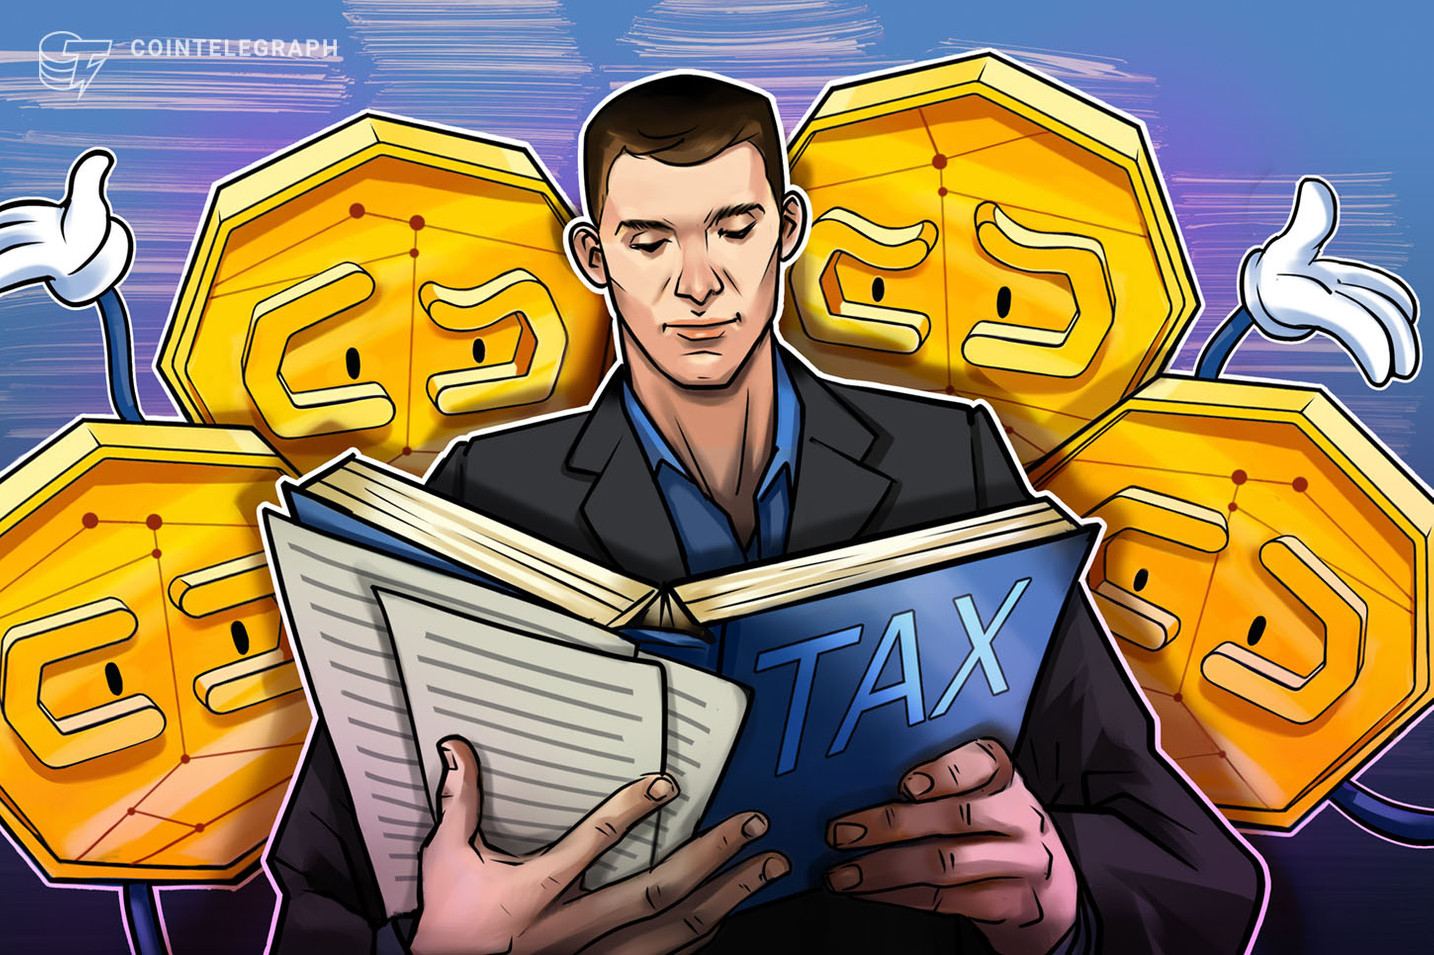 India's Income Tax Department may soon target crypto trades and ecosystem